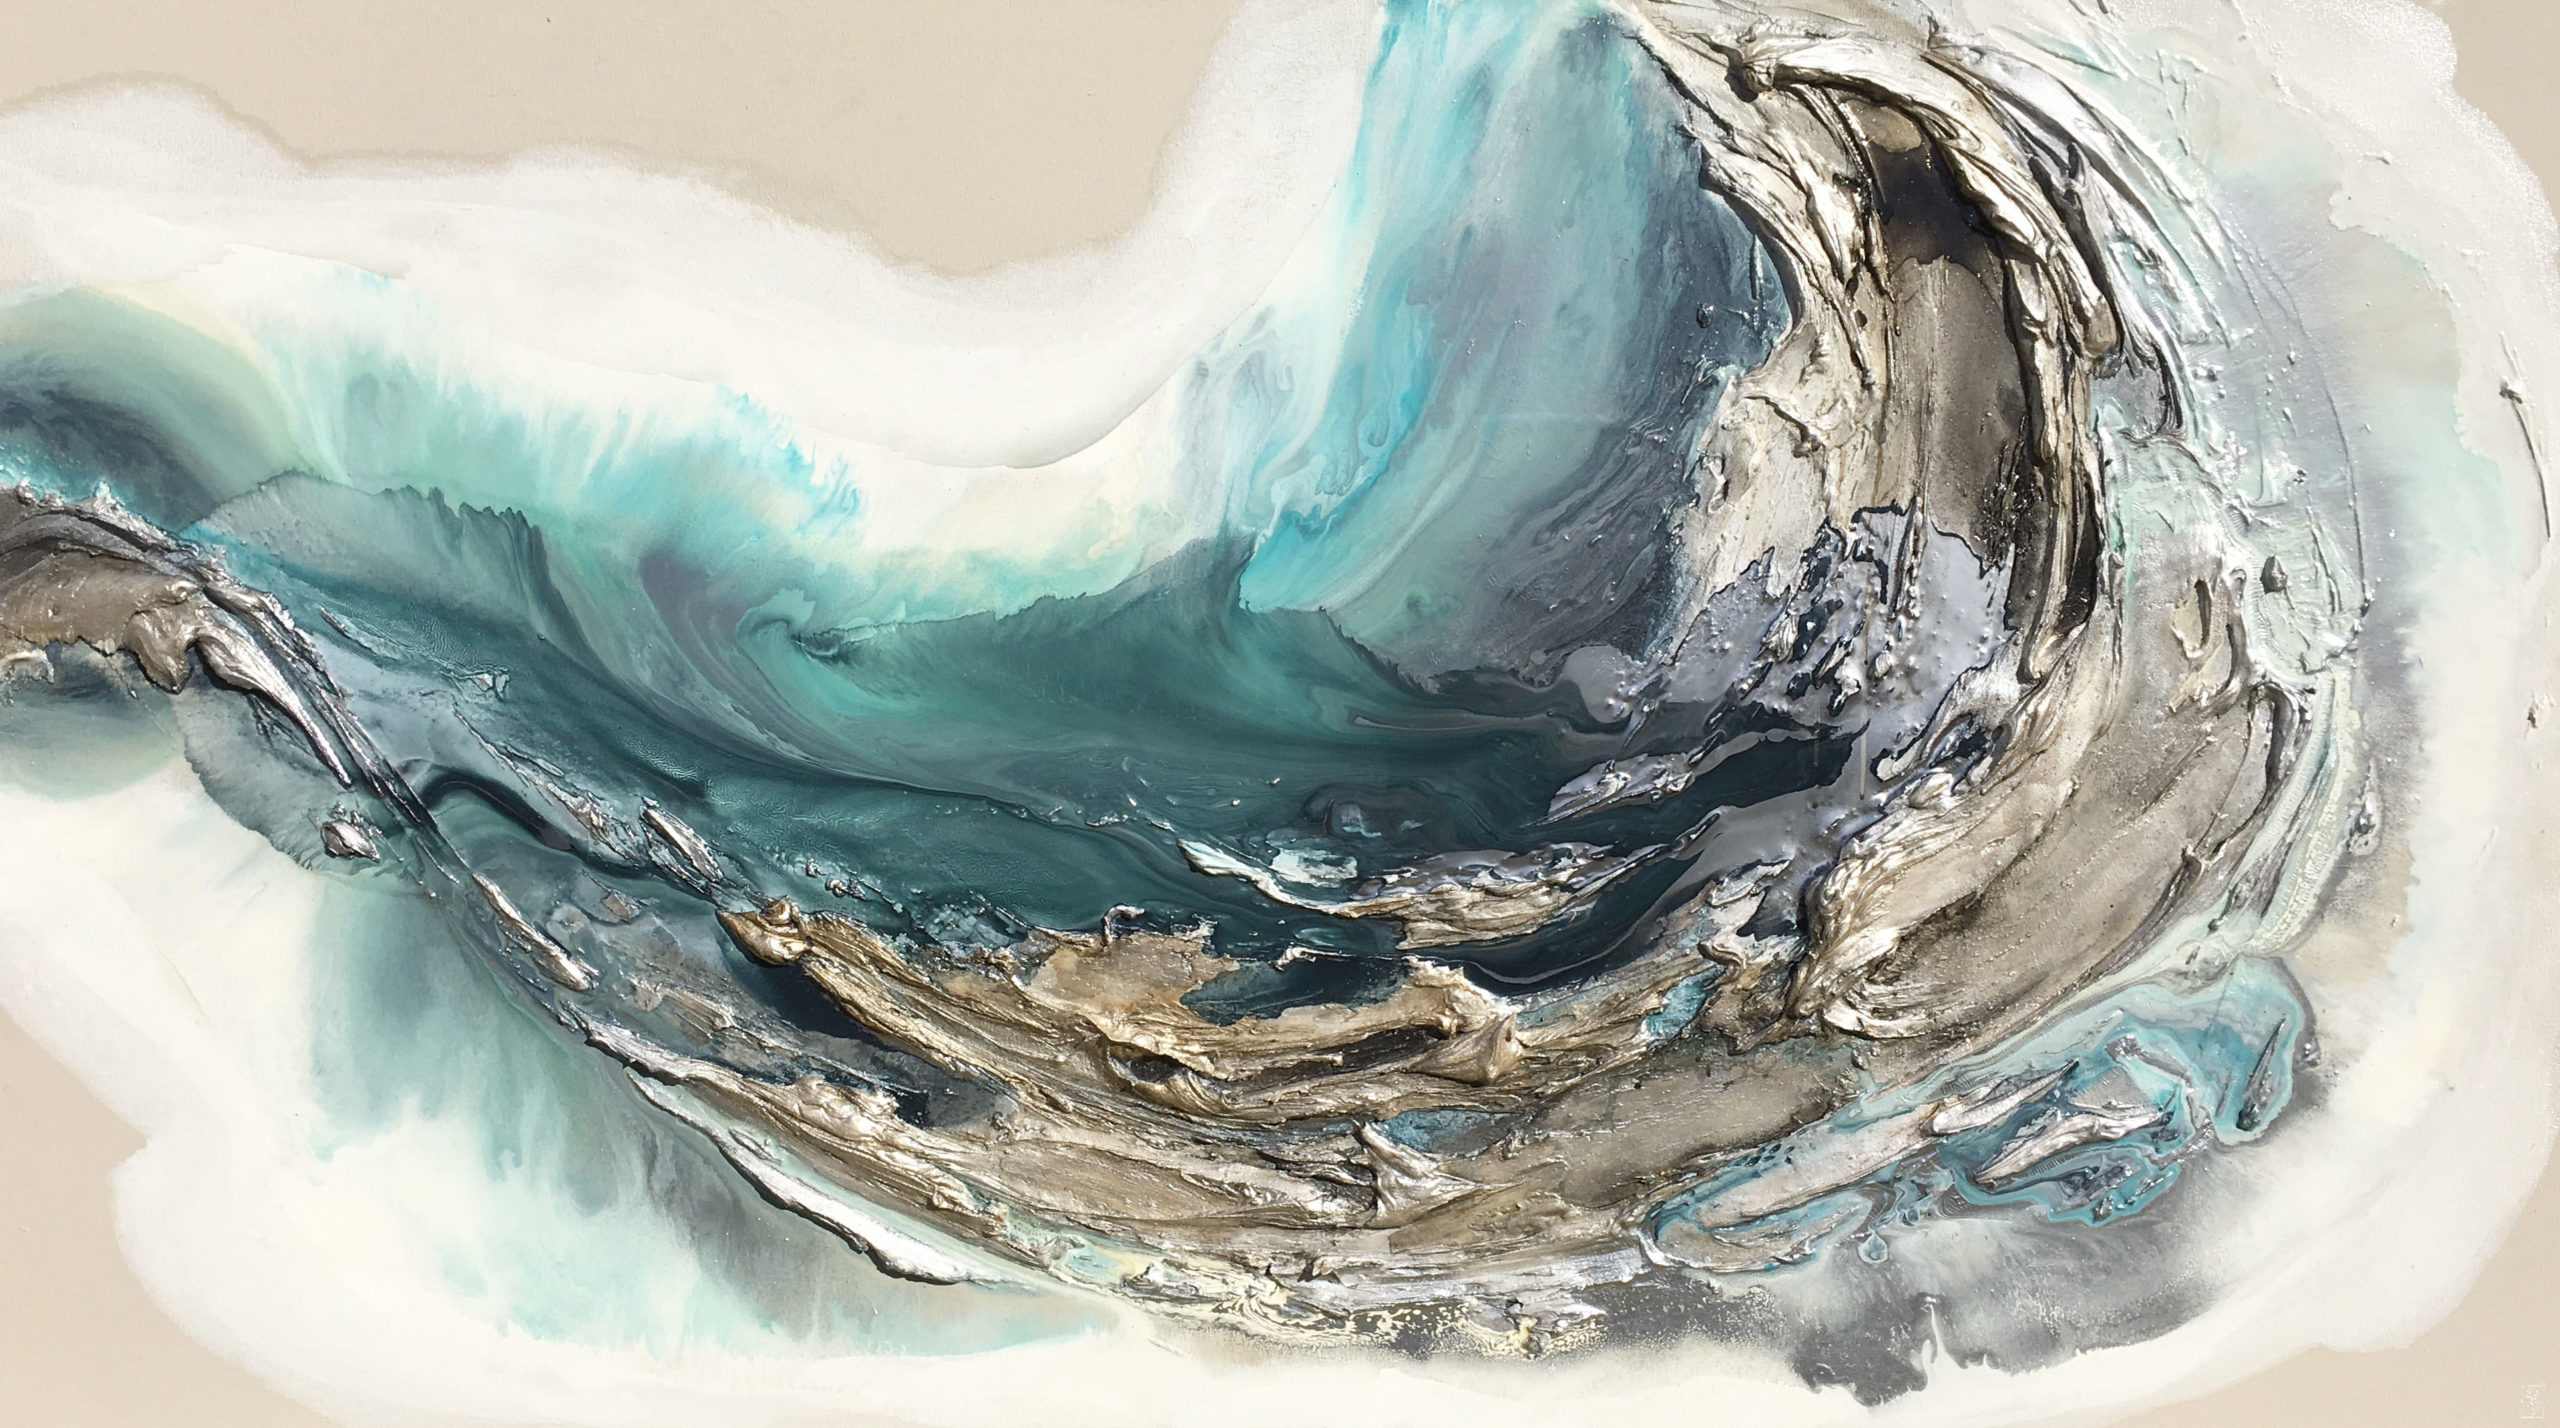 Vicky Sanders Oyster Series - Teal Oyster